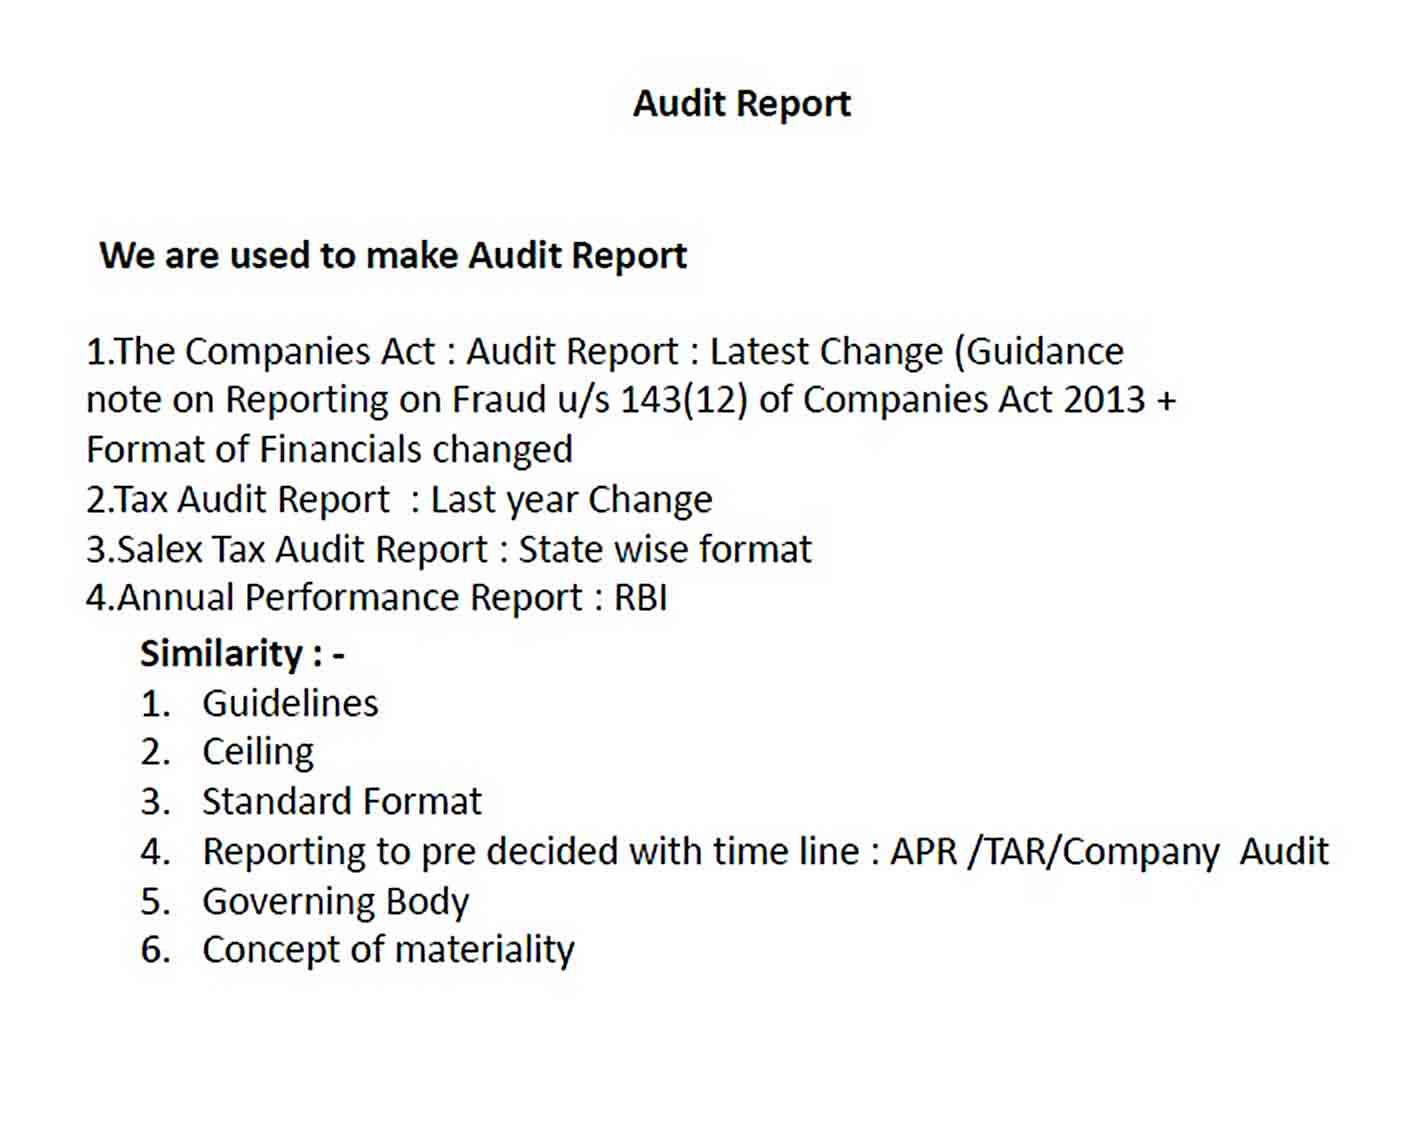 Templates forensic audit report